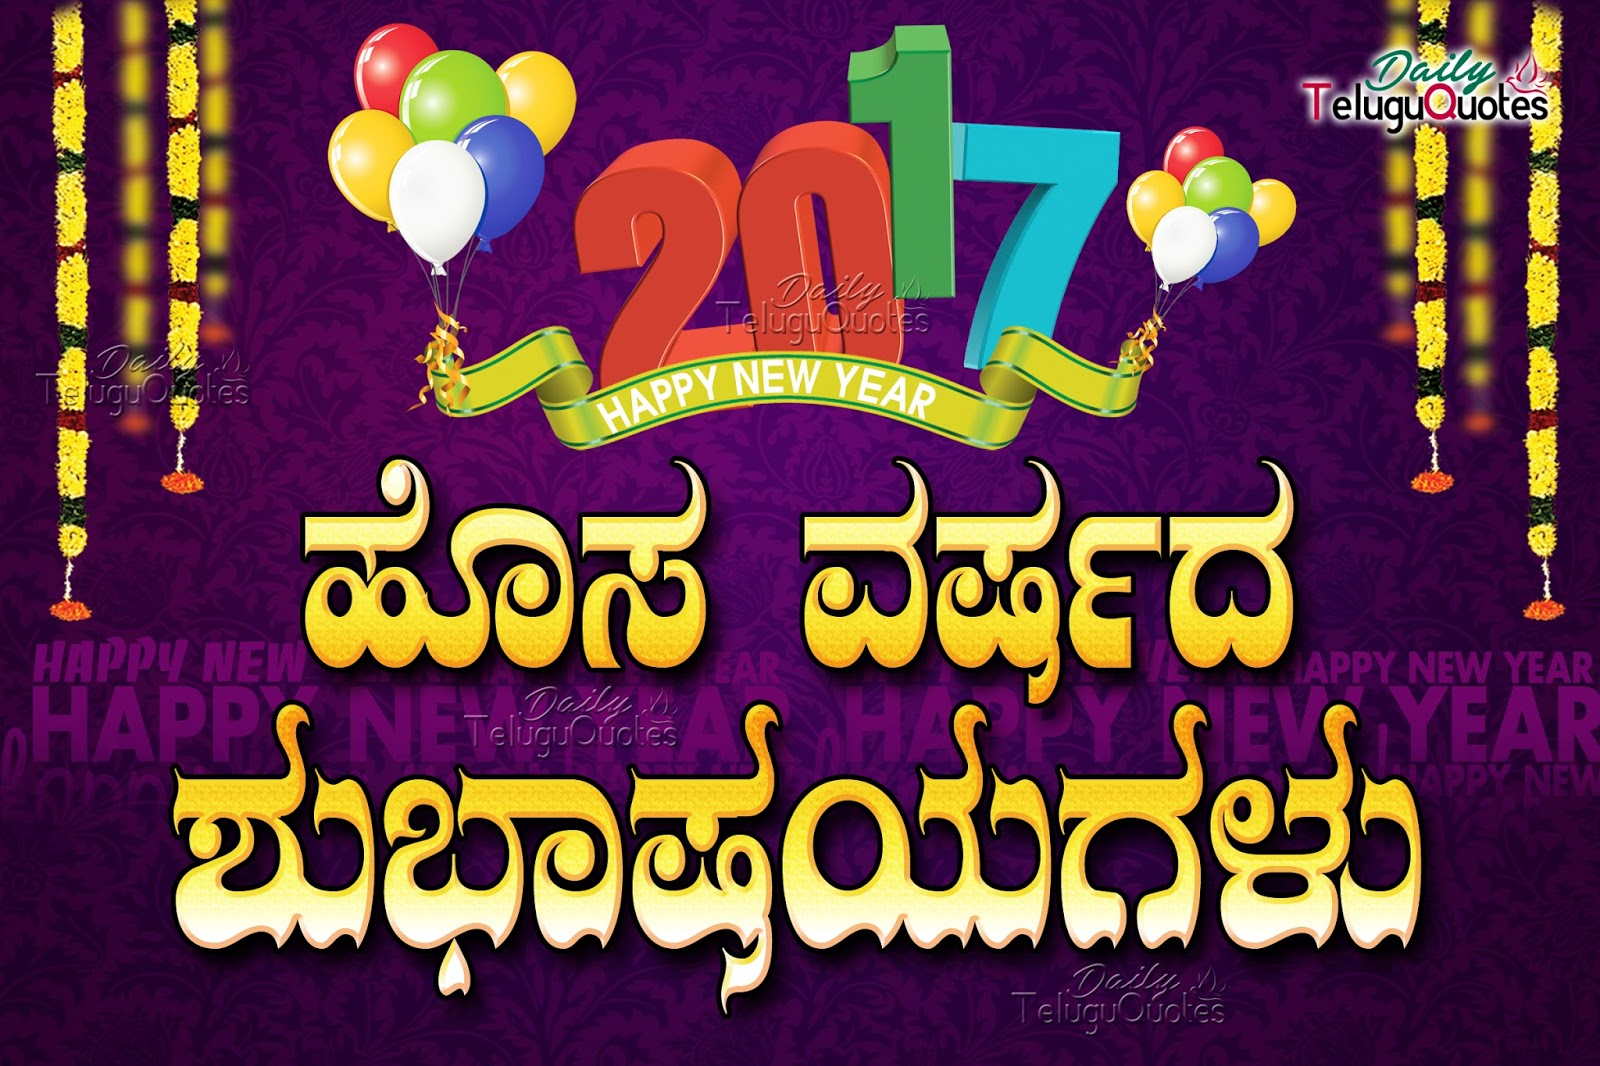 Nice 2017 New Year Wishes Messages Kannada Dailyteluguquotes